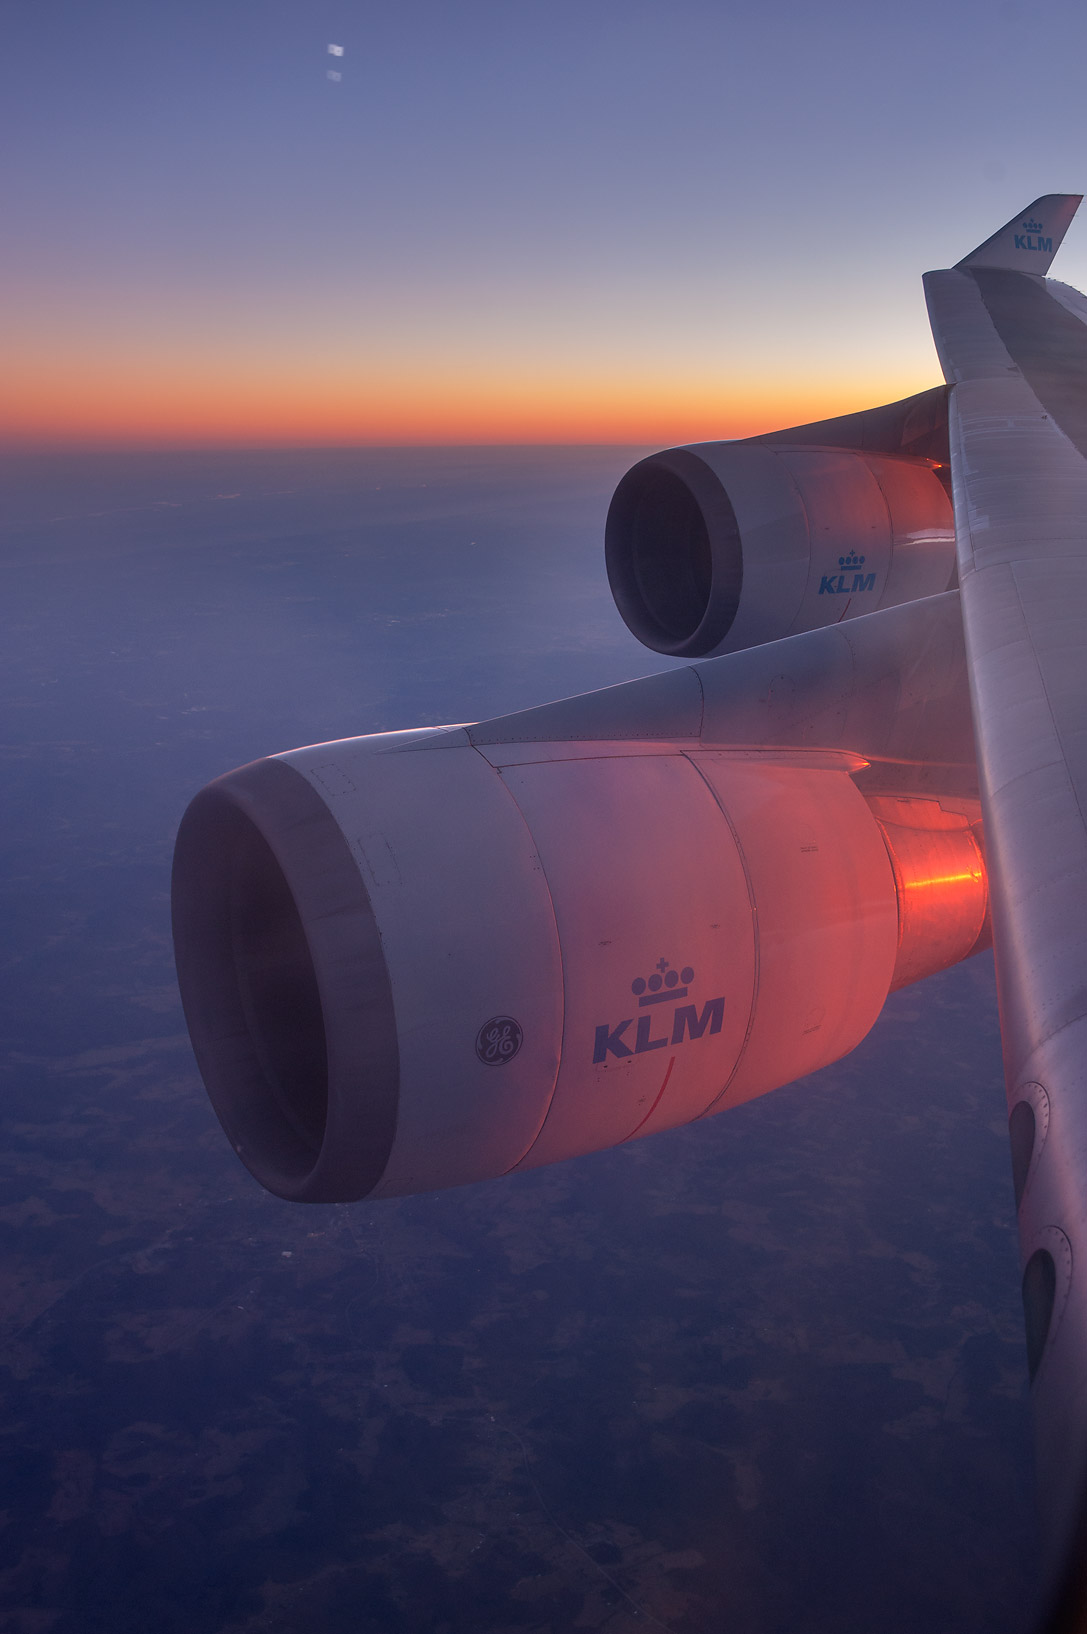 Sunset from a window of a plane from Houston, Texas to Europe